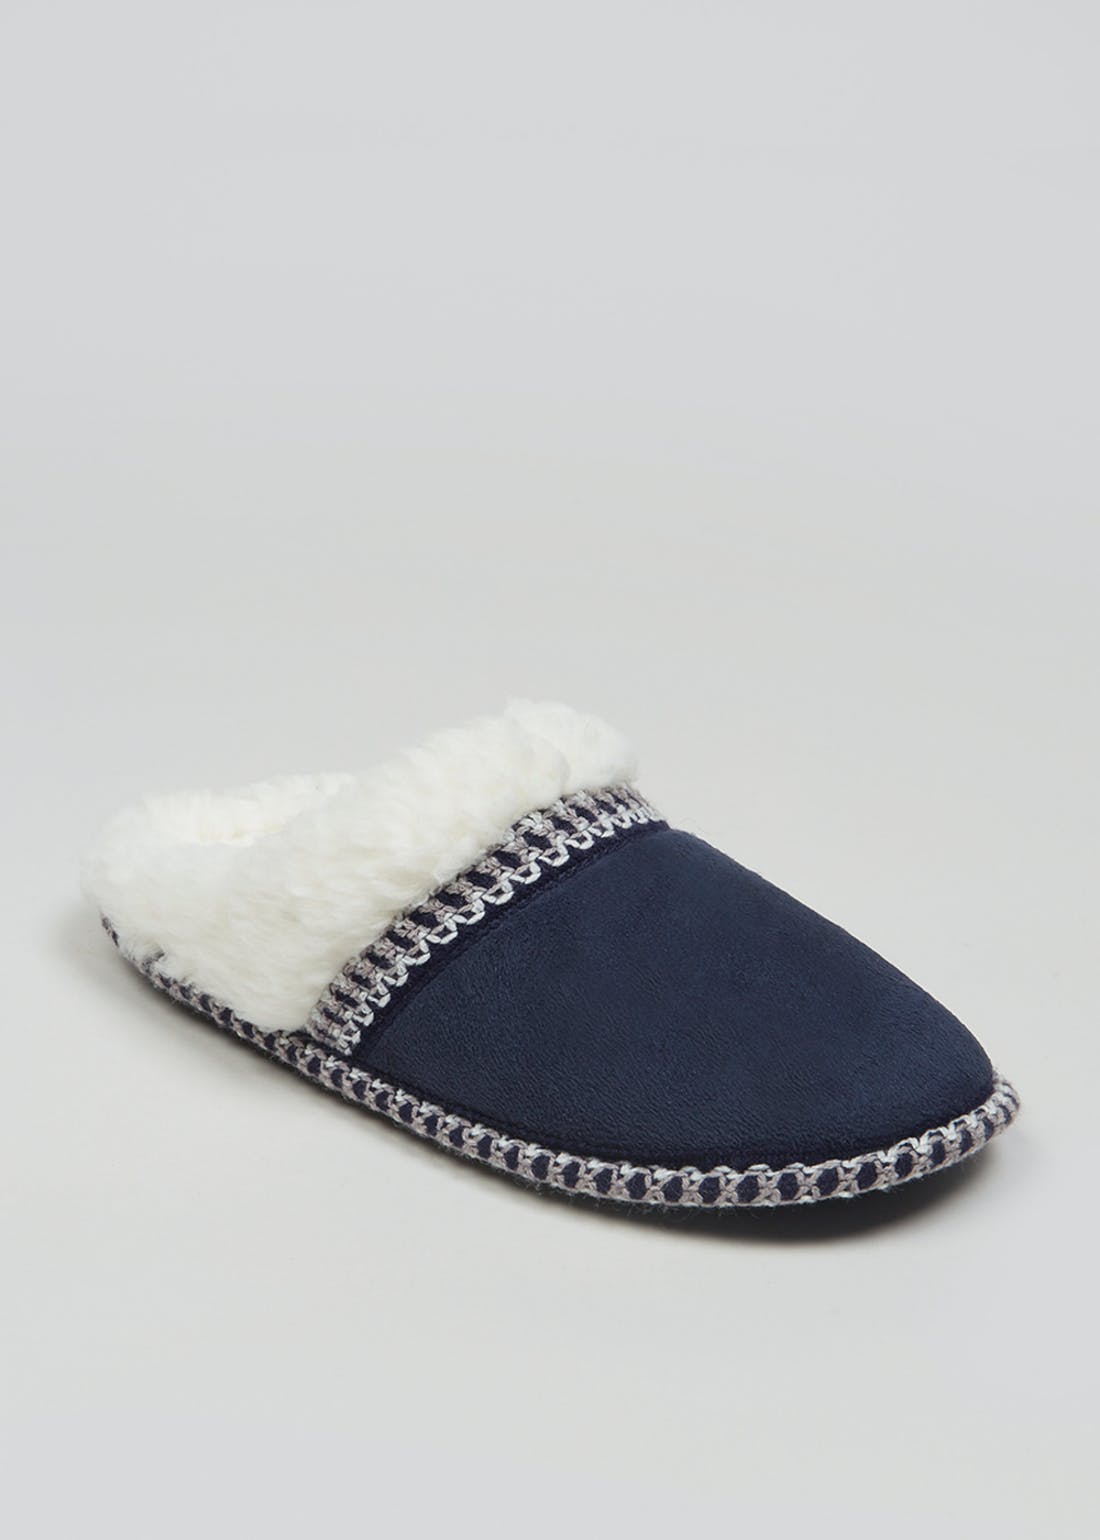 Navy Tape Lined Mule Slippers